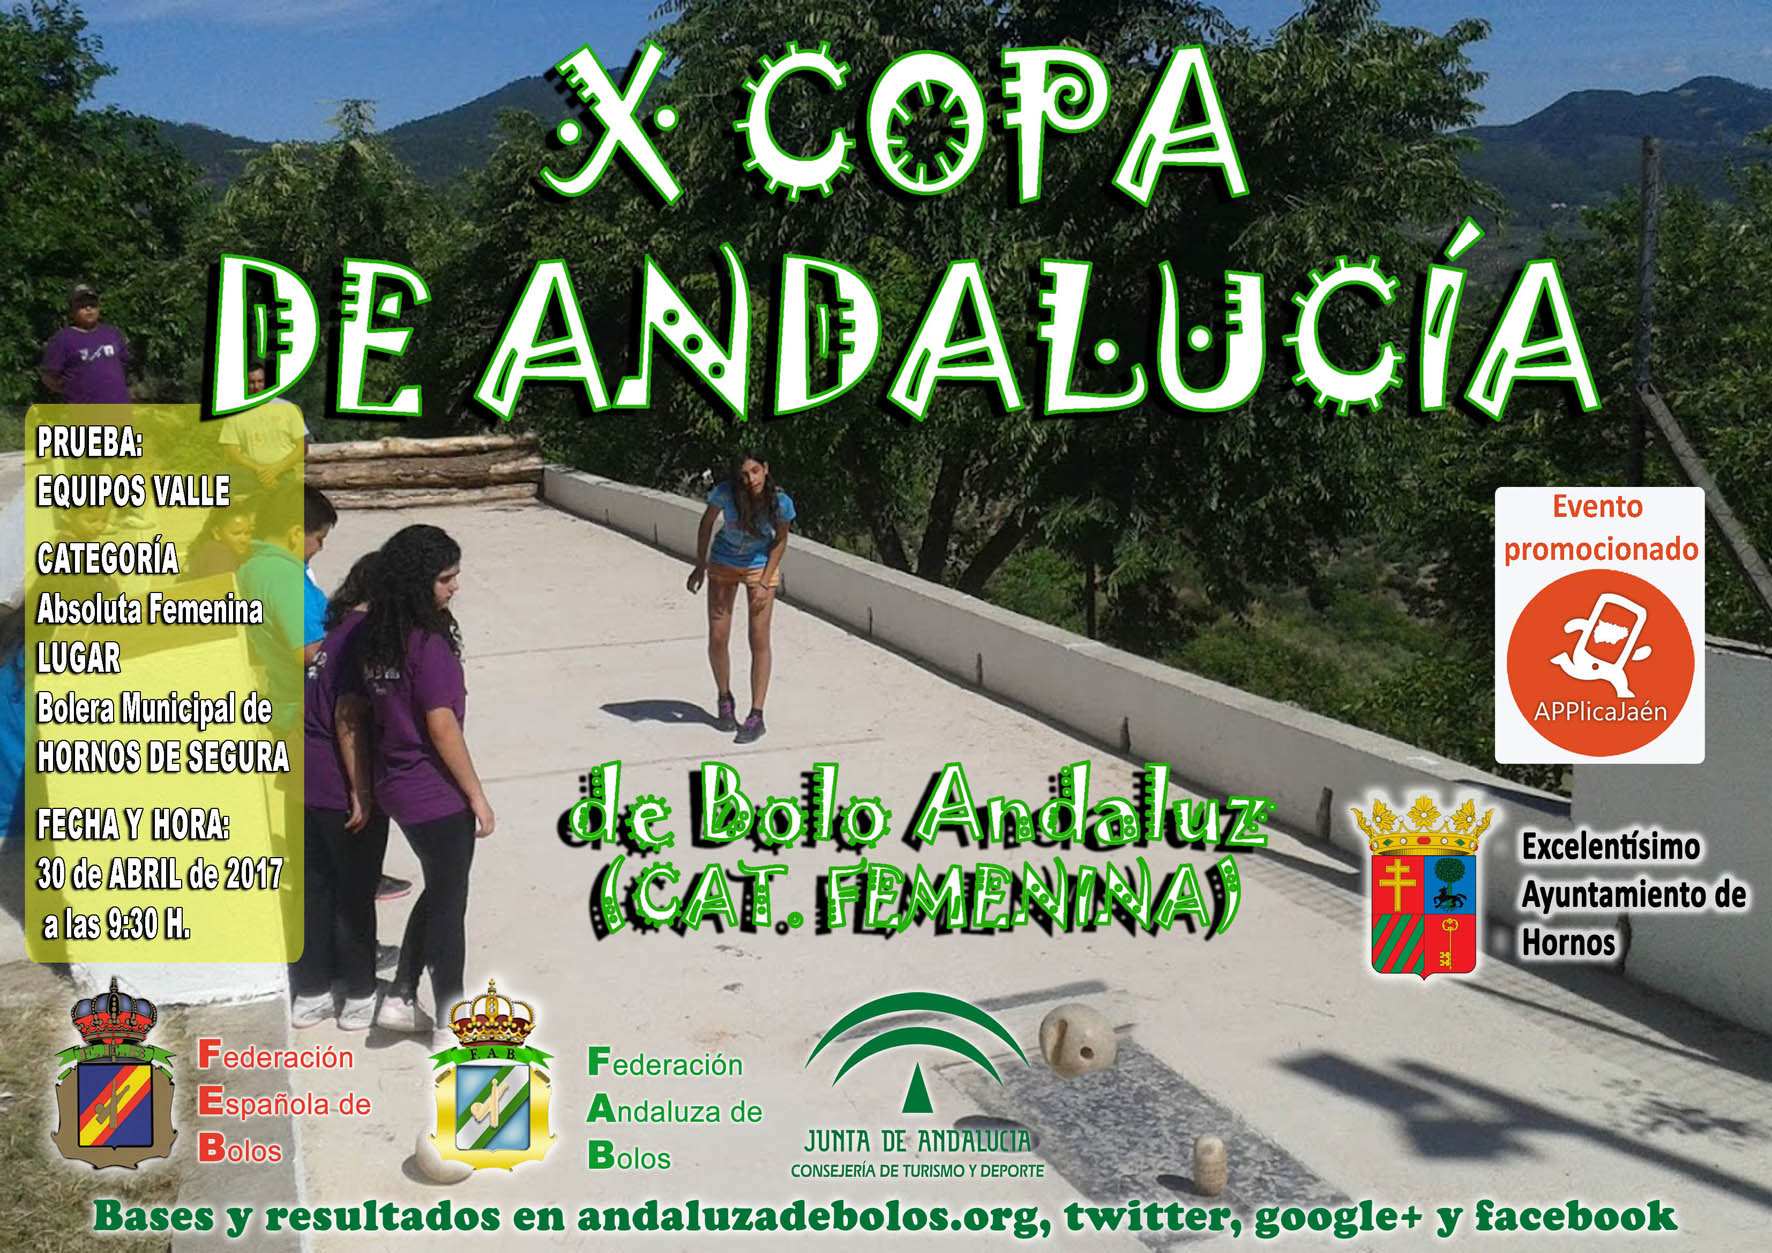 https://andaluzadebolosdotorg.files.wordpress.com/2017/04/cartel-copa-andalucia-bolo-andaluz-femenina-2017-red.jpg